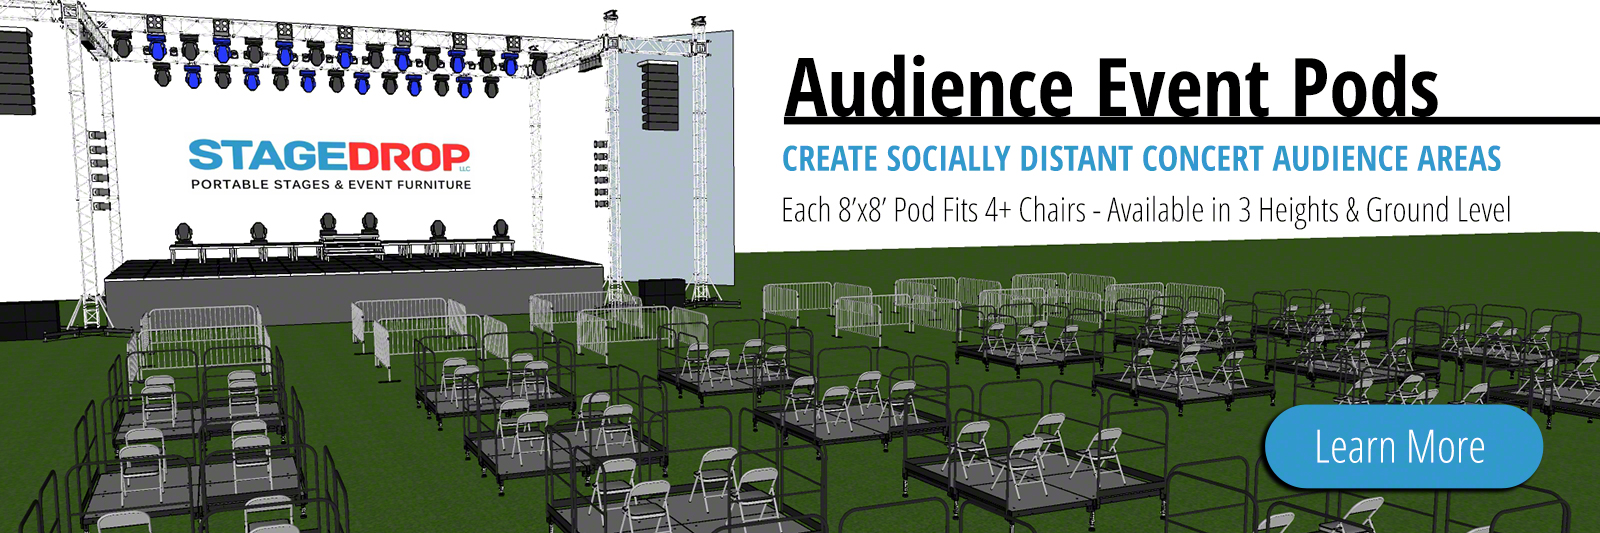 Audience Event Pods - For Socially Distant Concerts